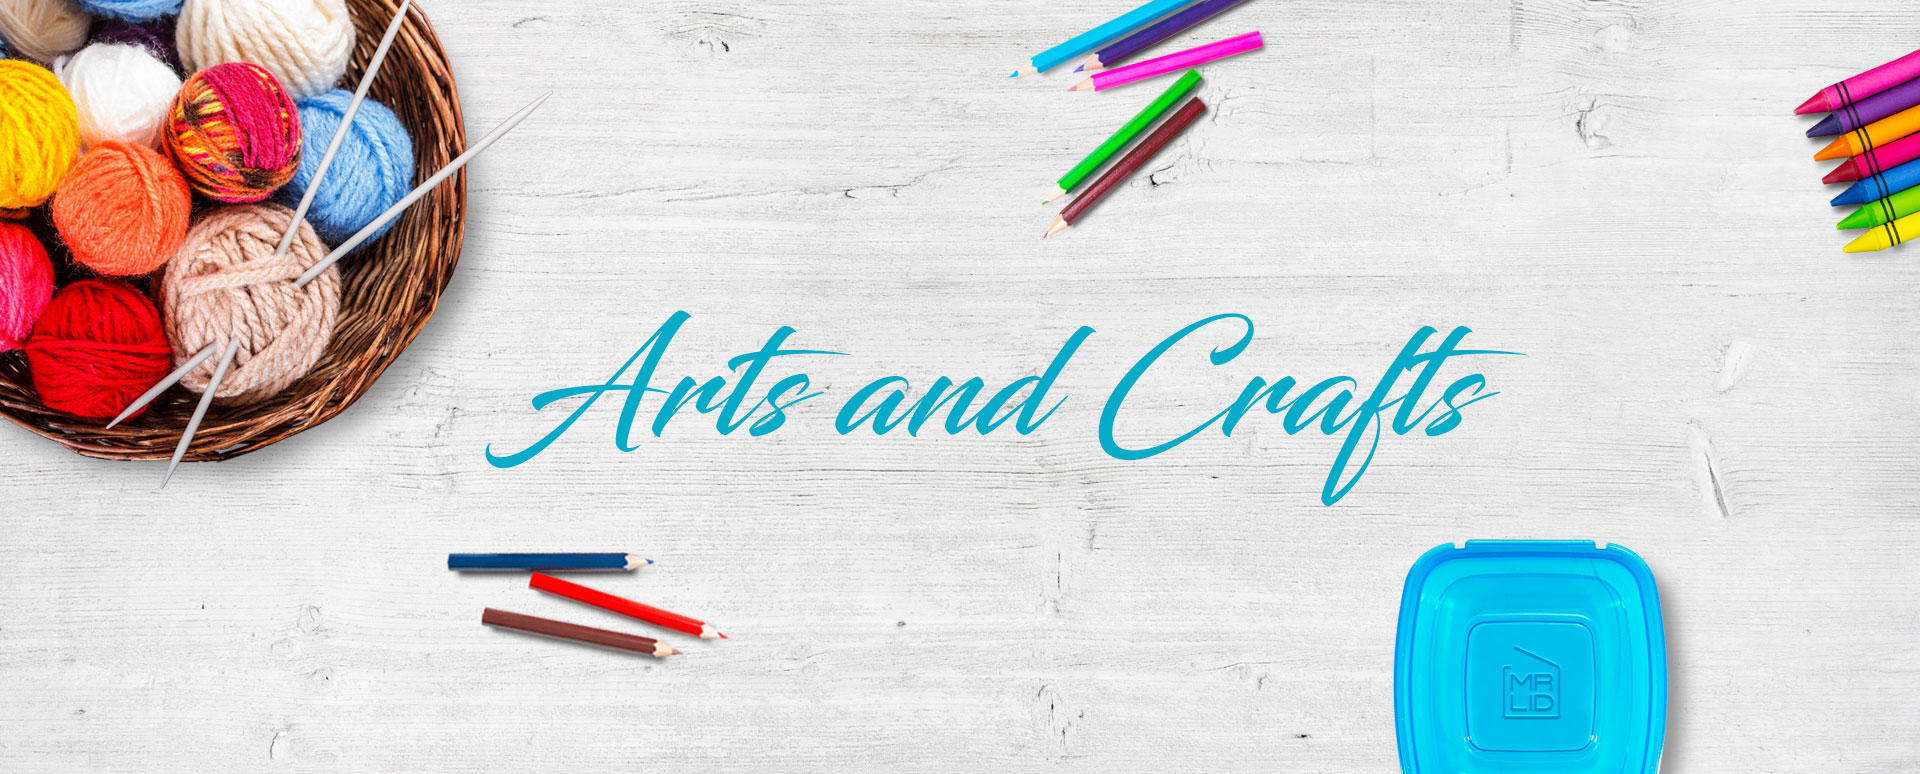 ARTS AND CRAFTS HOLIDAY CLUB: 25 APRIL 2018